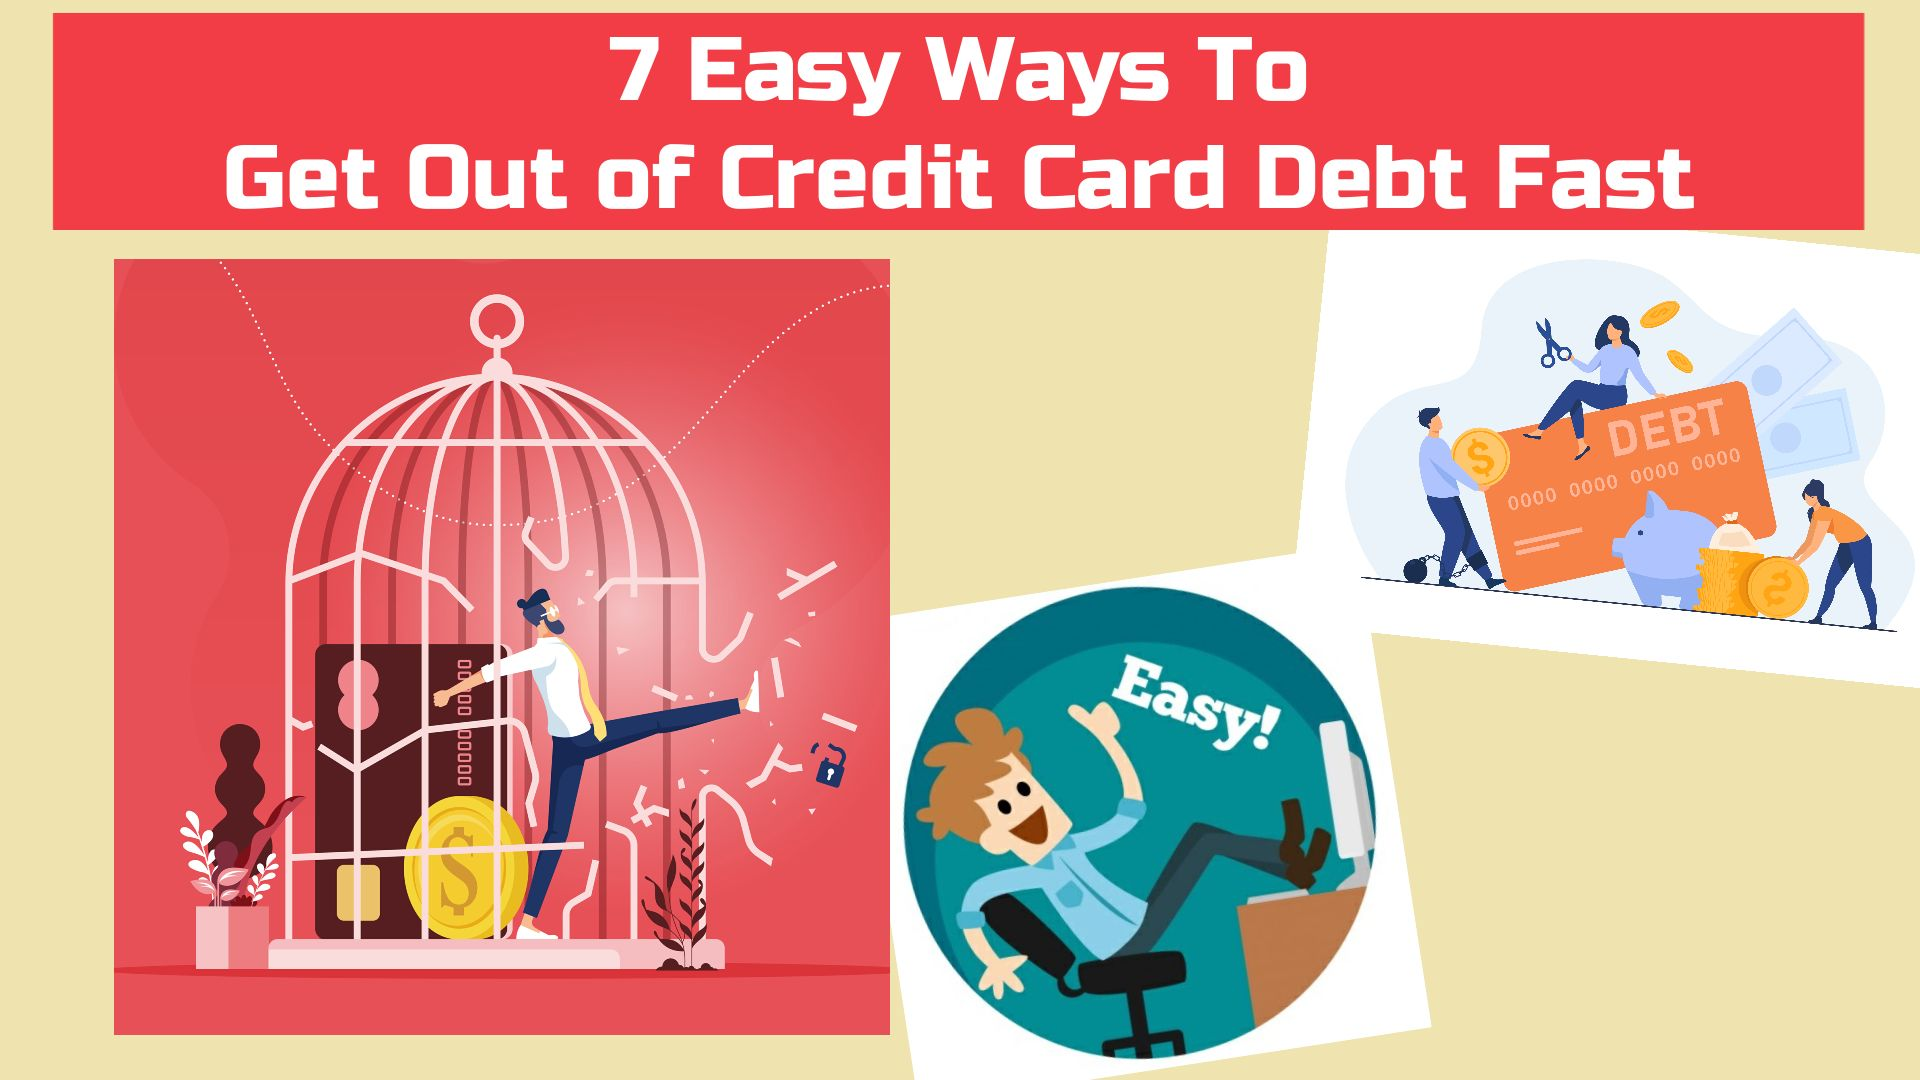 7 Easy Ways To Get Out of Credit Card Debt Fast